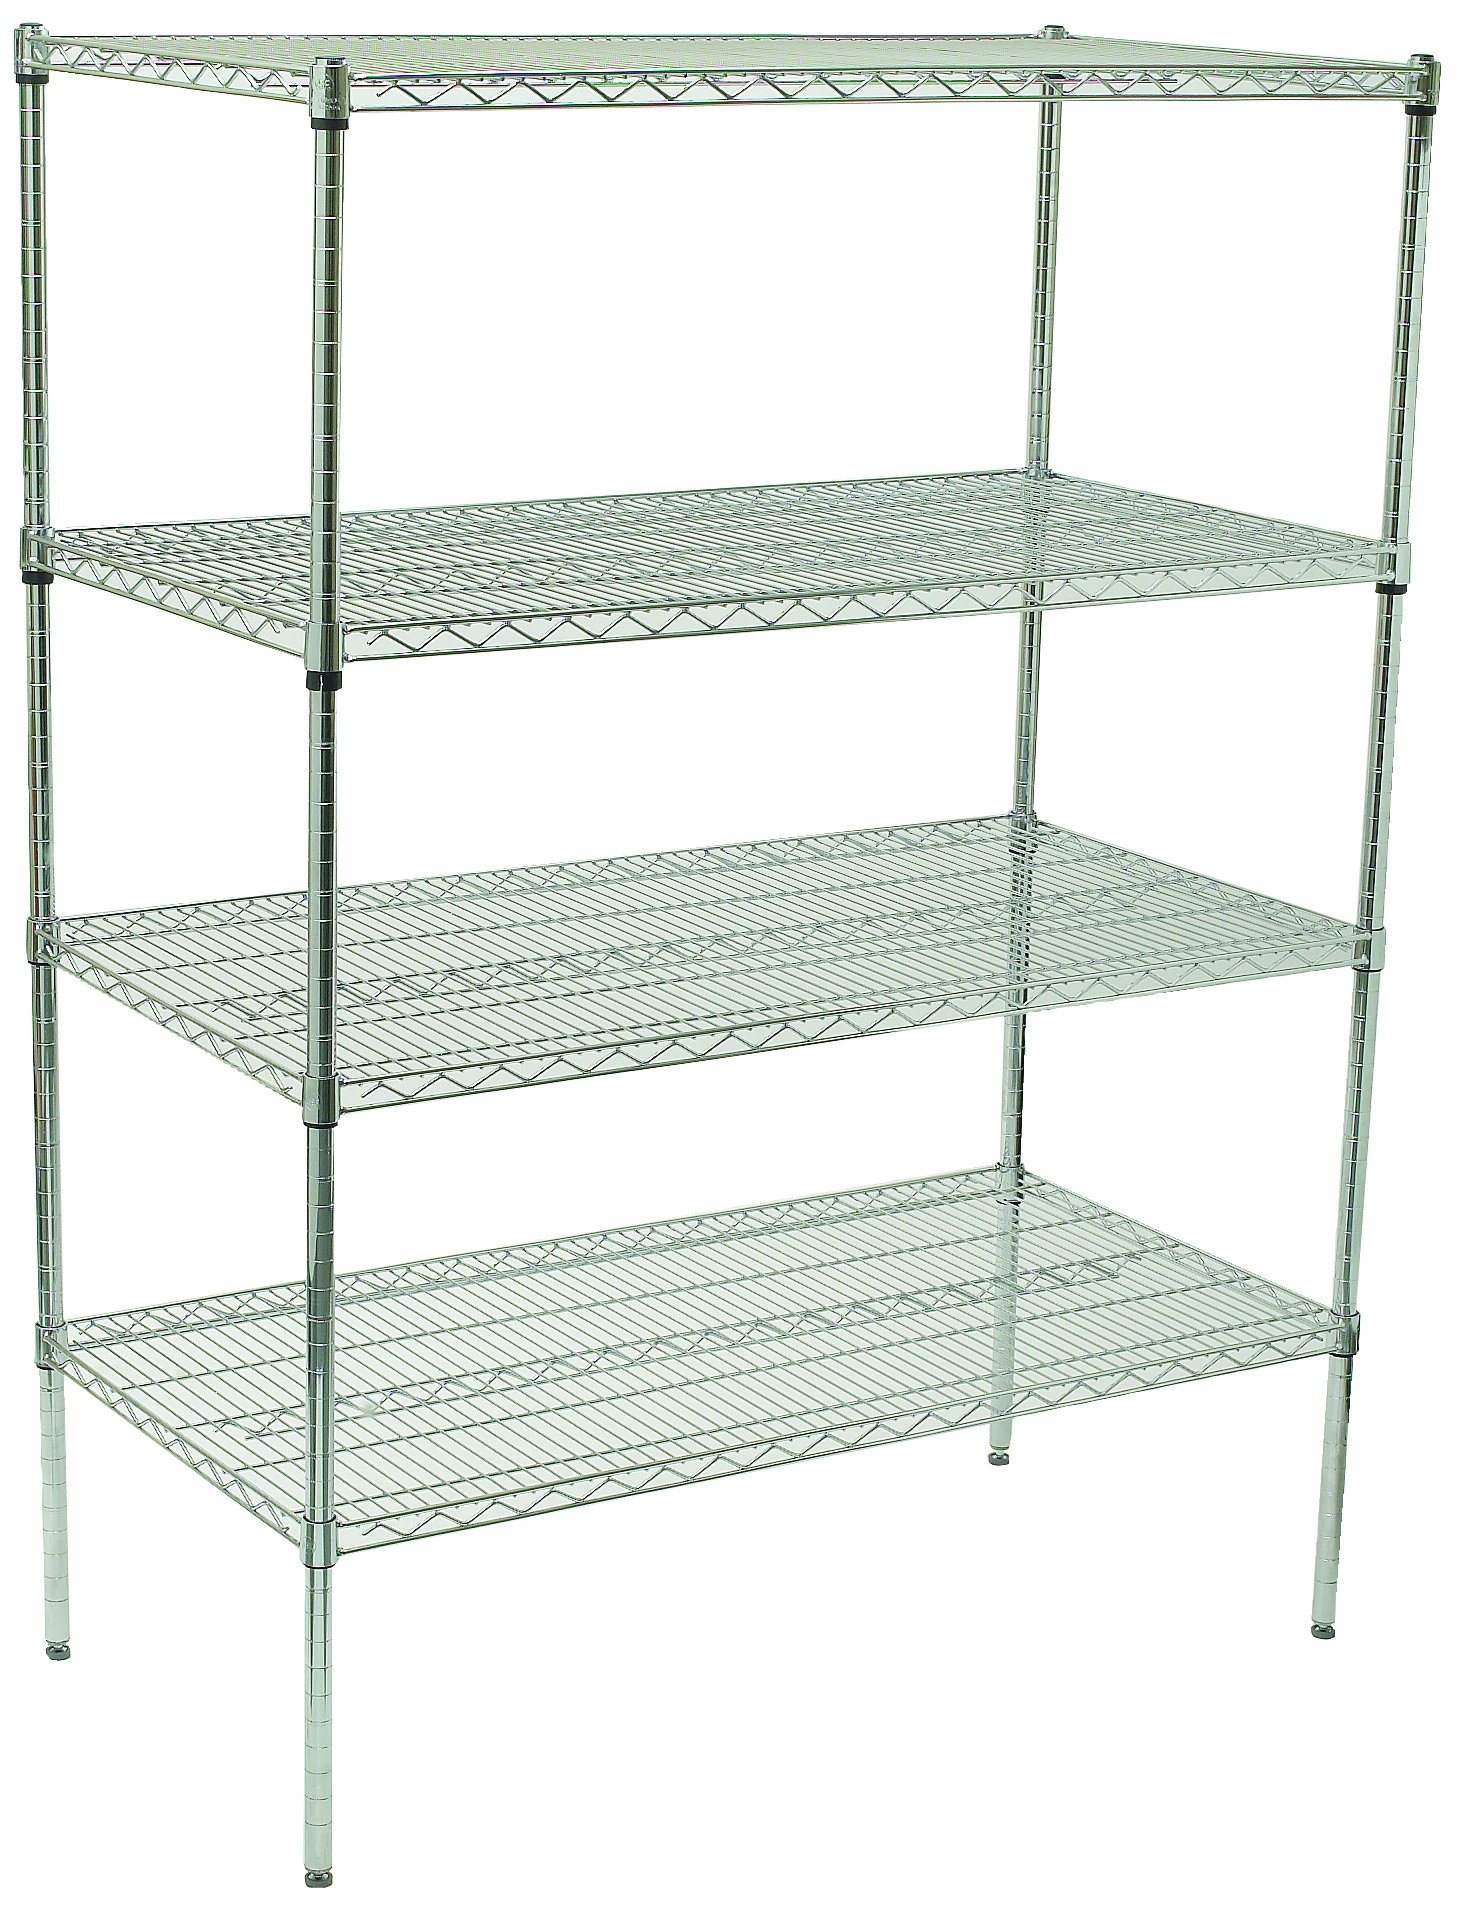 Winco VCS-1848 4-Tier Wire Shelving Set, Chrome Plated, 18'' X 48'' X 72''